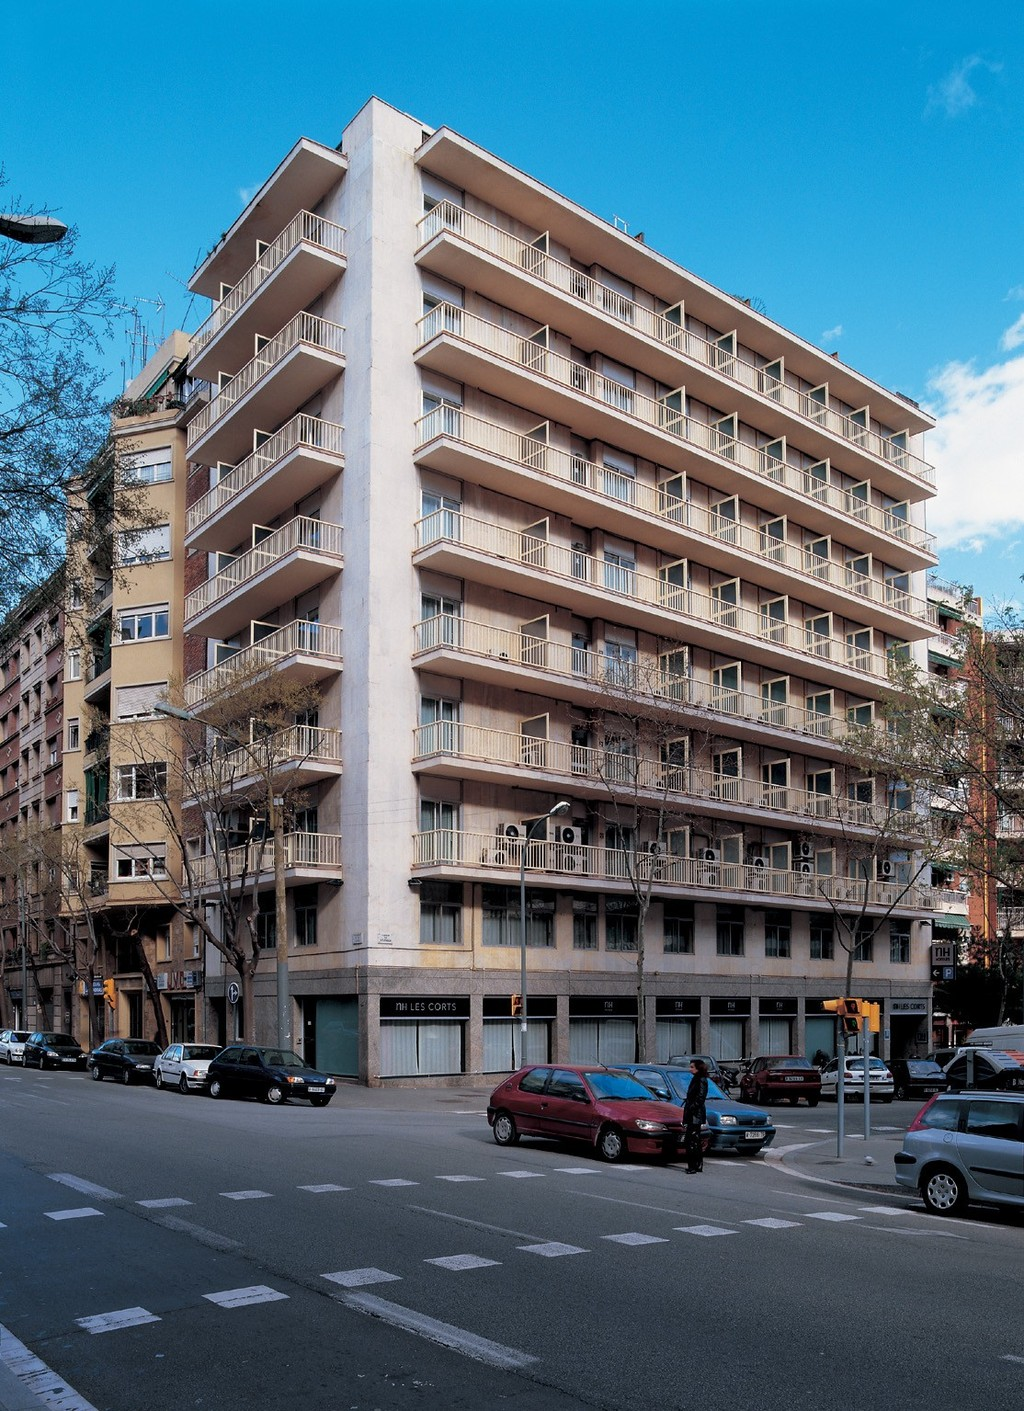 Hotel nh les corts barcelona spain for Hotels barcelone